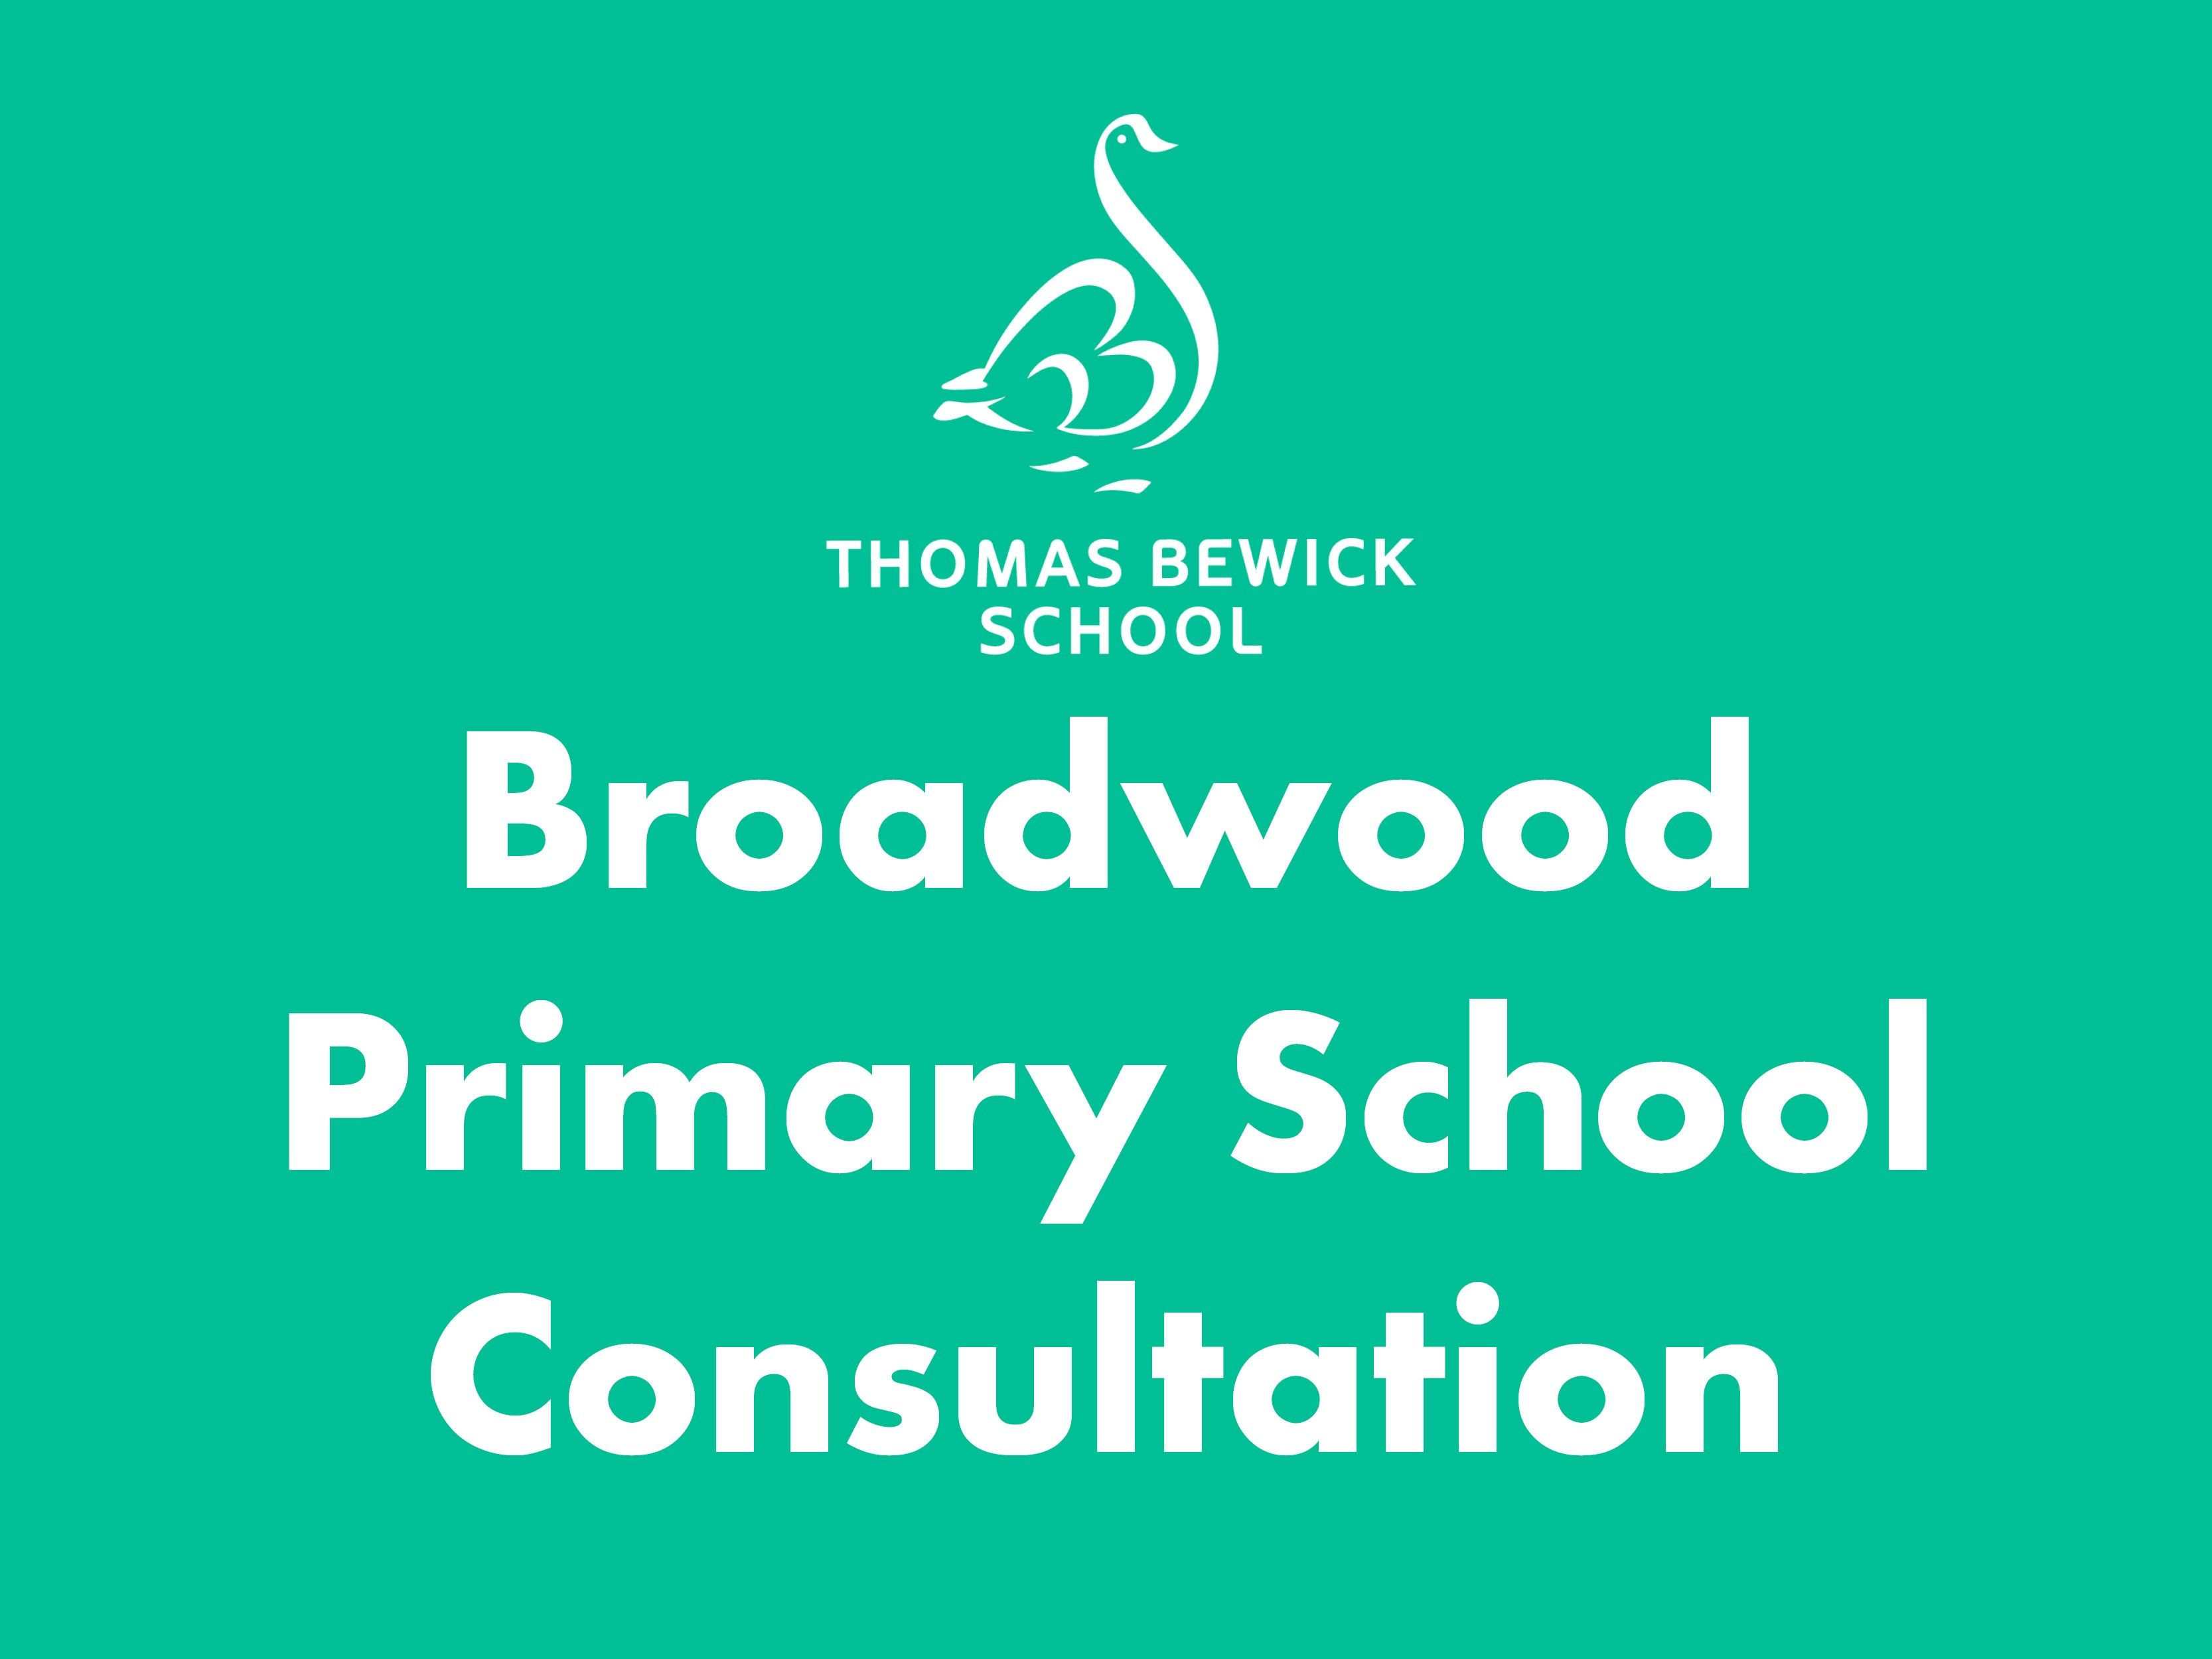 Consultation: Thomas Bewick expansion at Broadwood Primary School